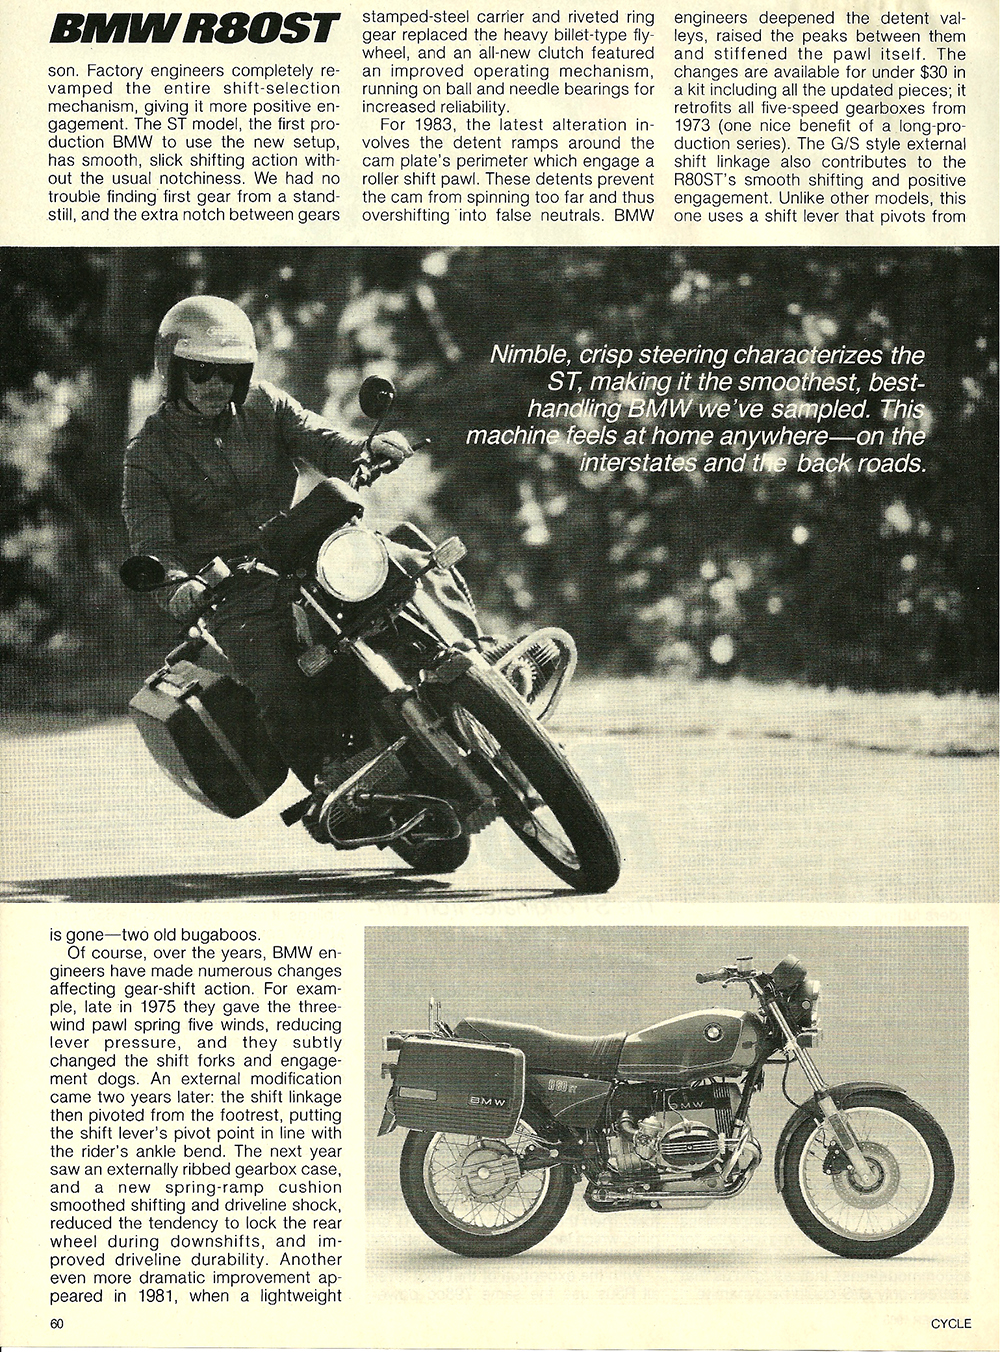 1983 BMW R80ST road test 2.jpg